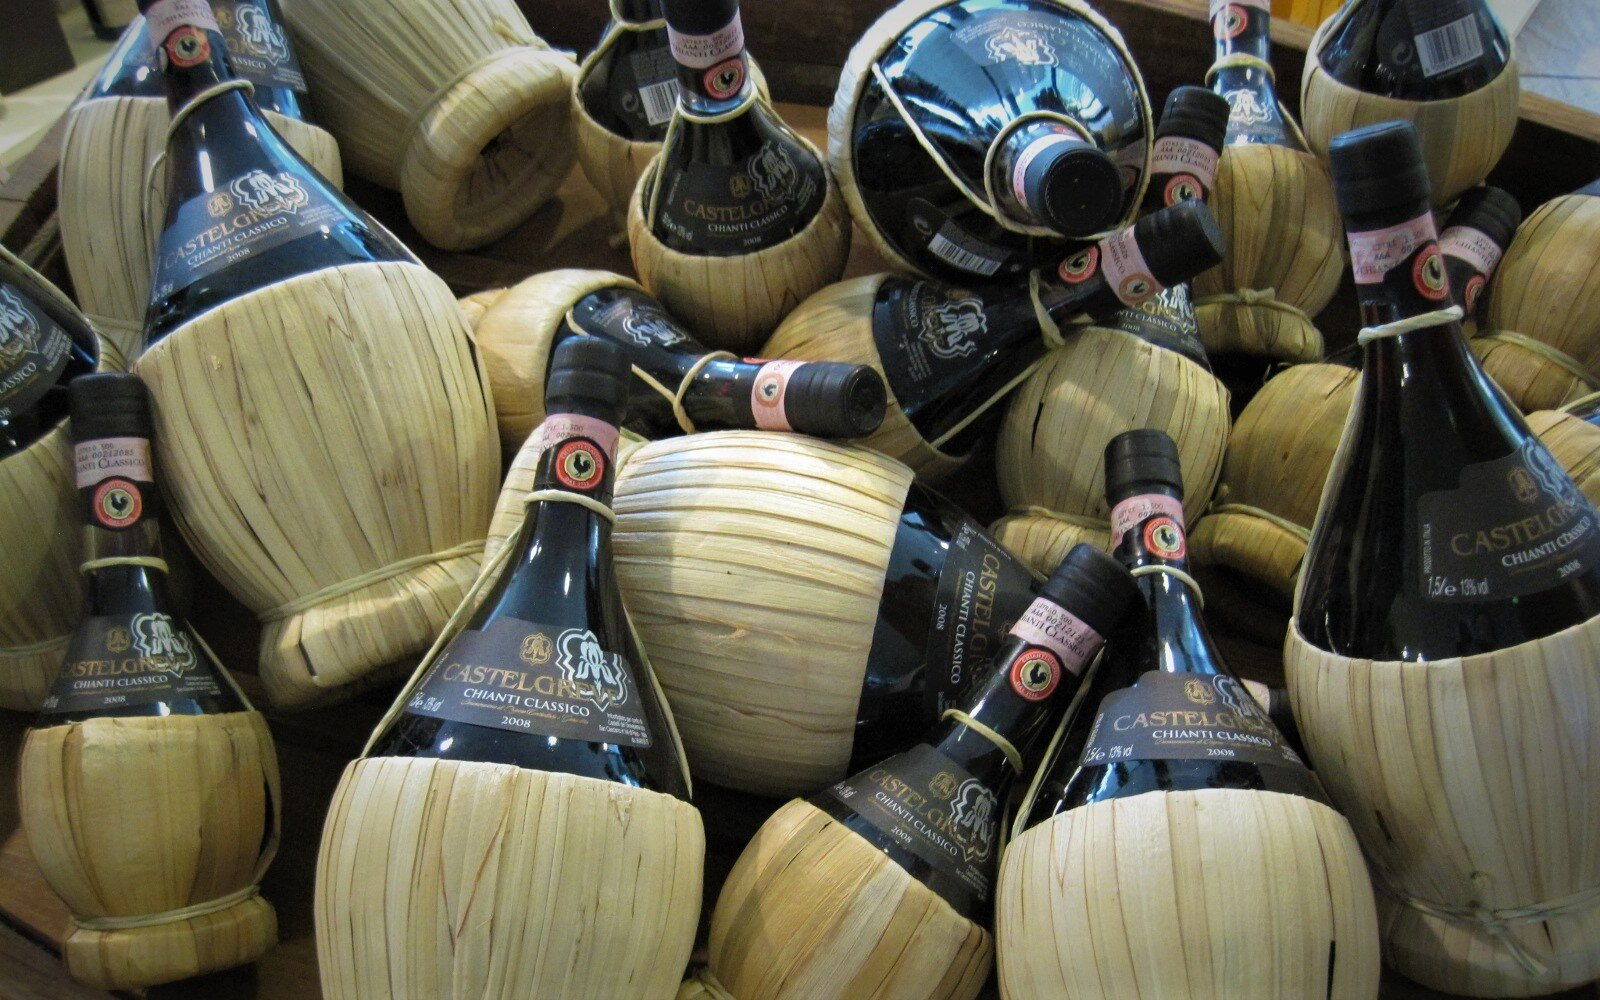 A virtual trip to Tuscany and its greatest wines – from classics to Super Tuscans to whites